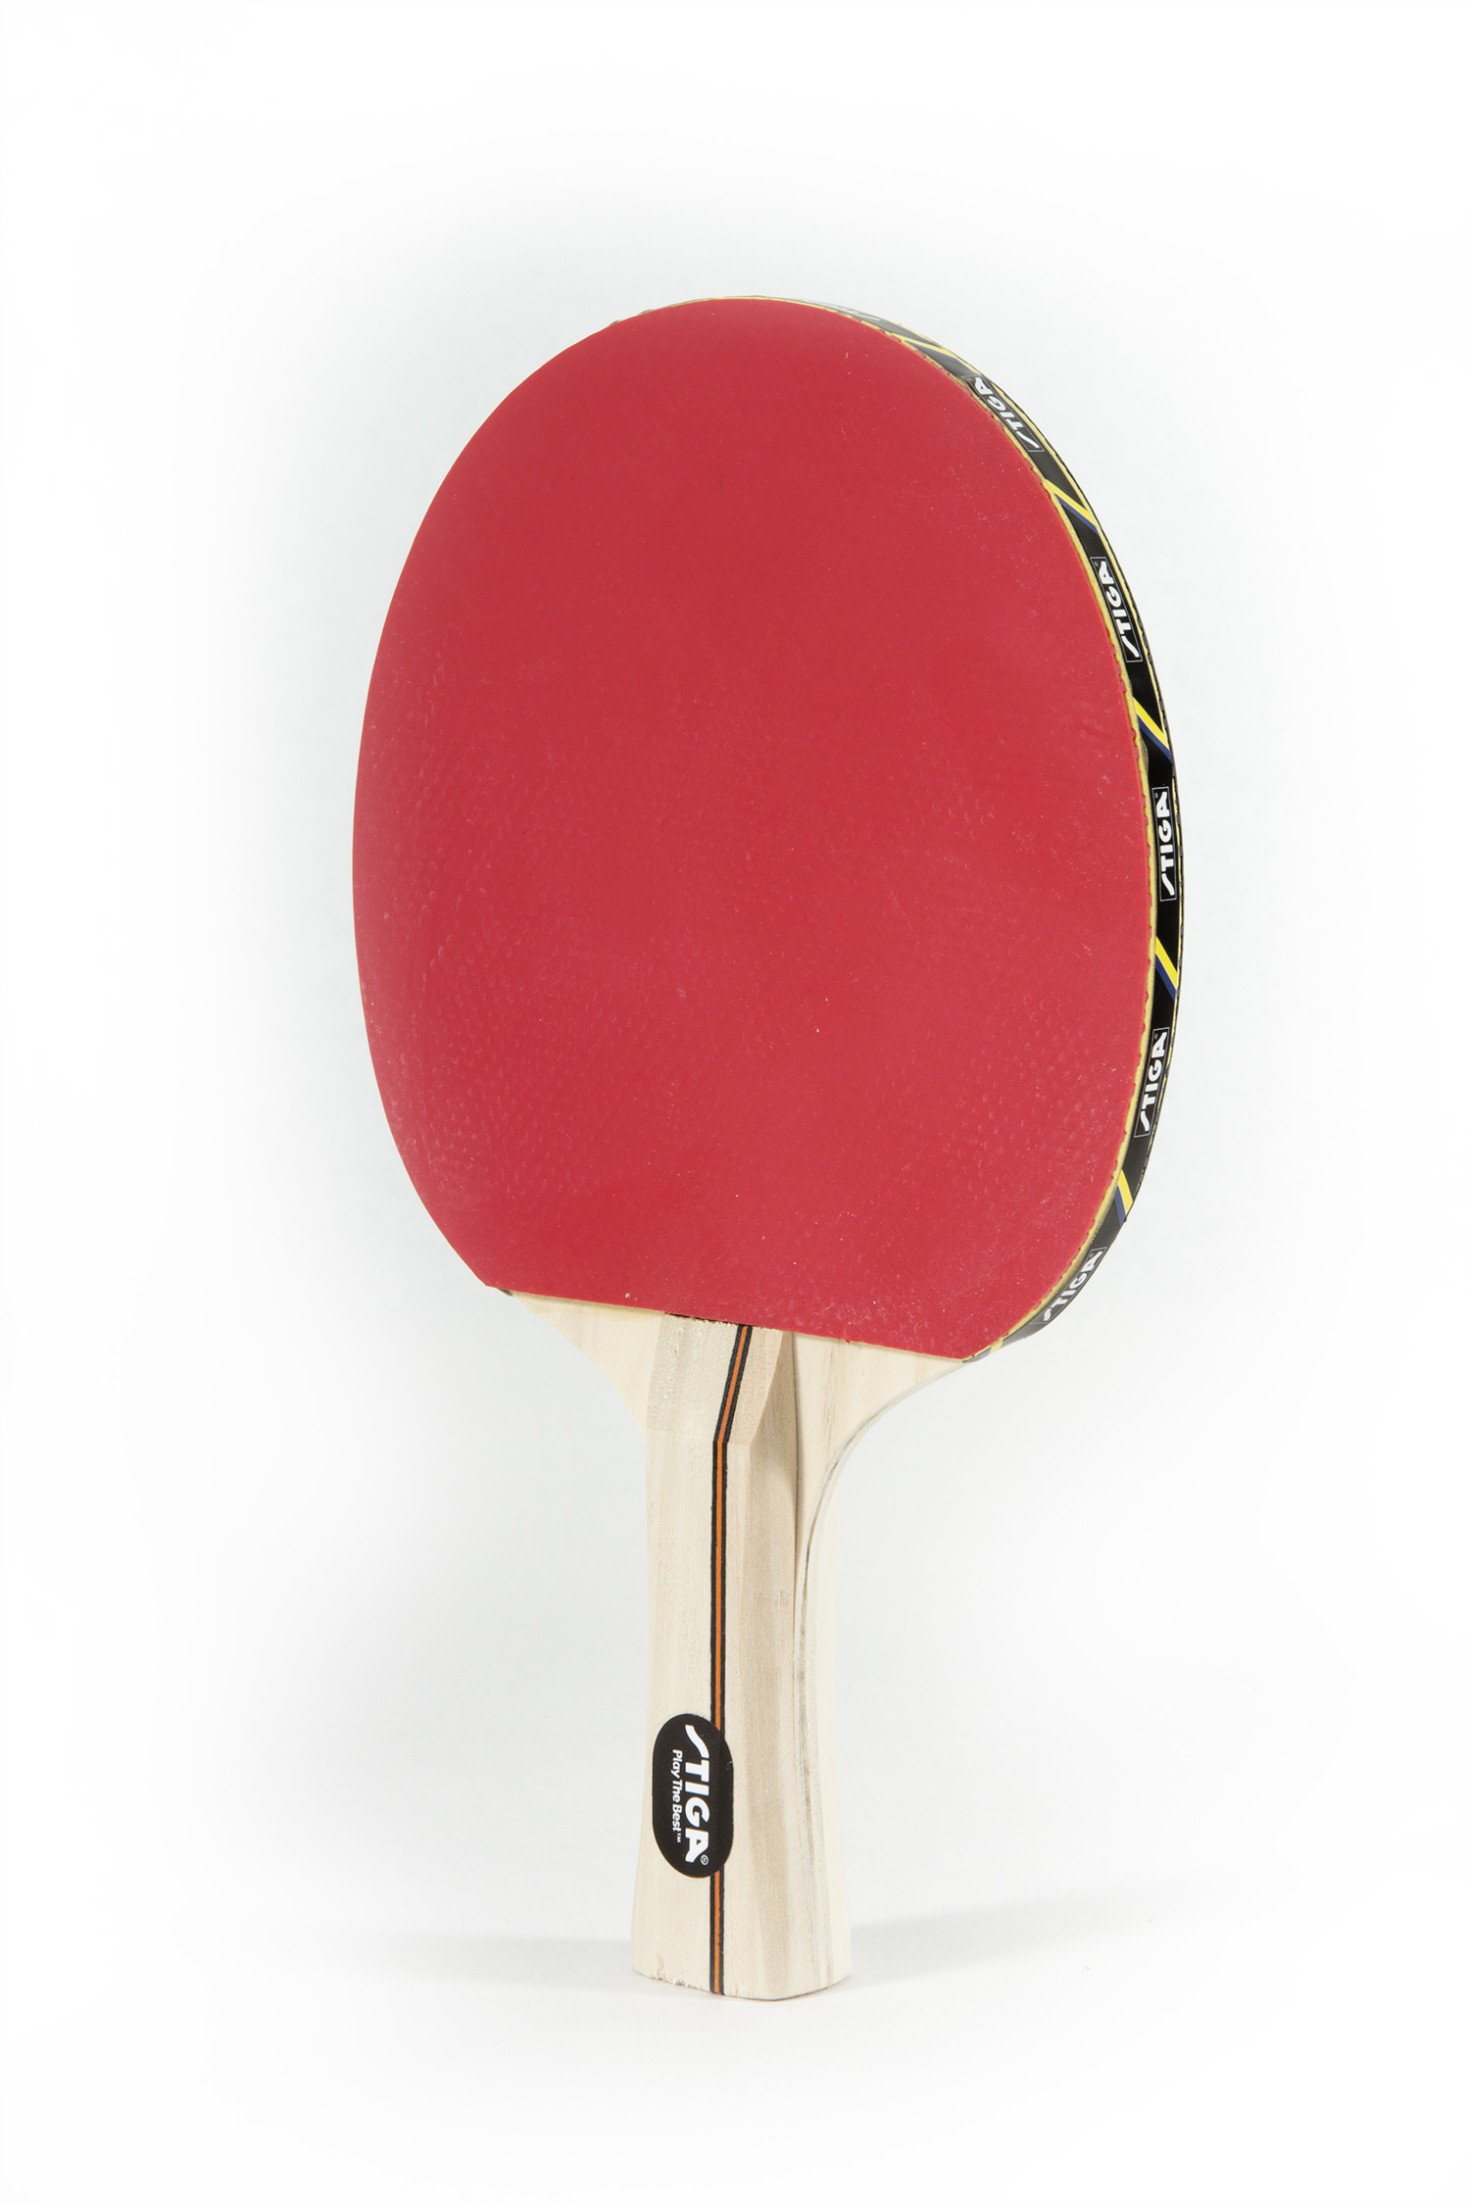 STIGA Performance 4-Player Table Tennis Racket Set with Inverted Rubber for Increased Ball Control and Added Spin by STIGA (Image #8)